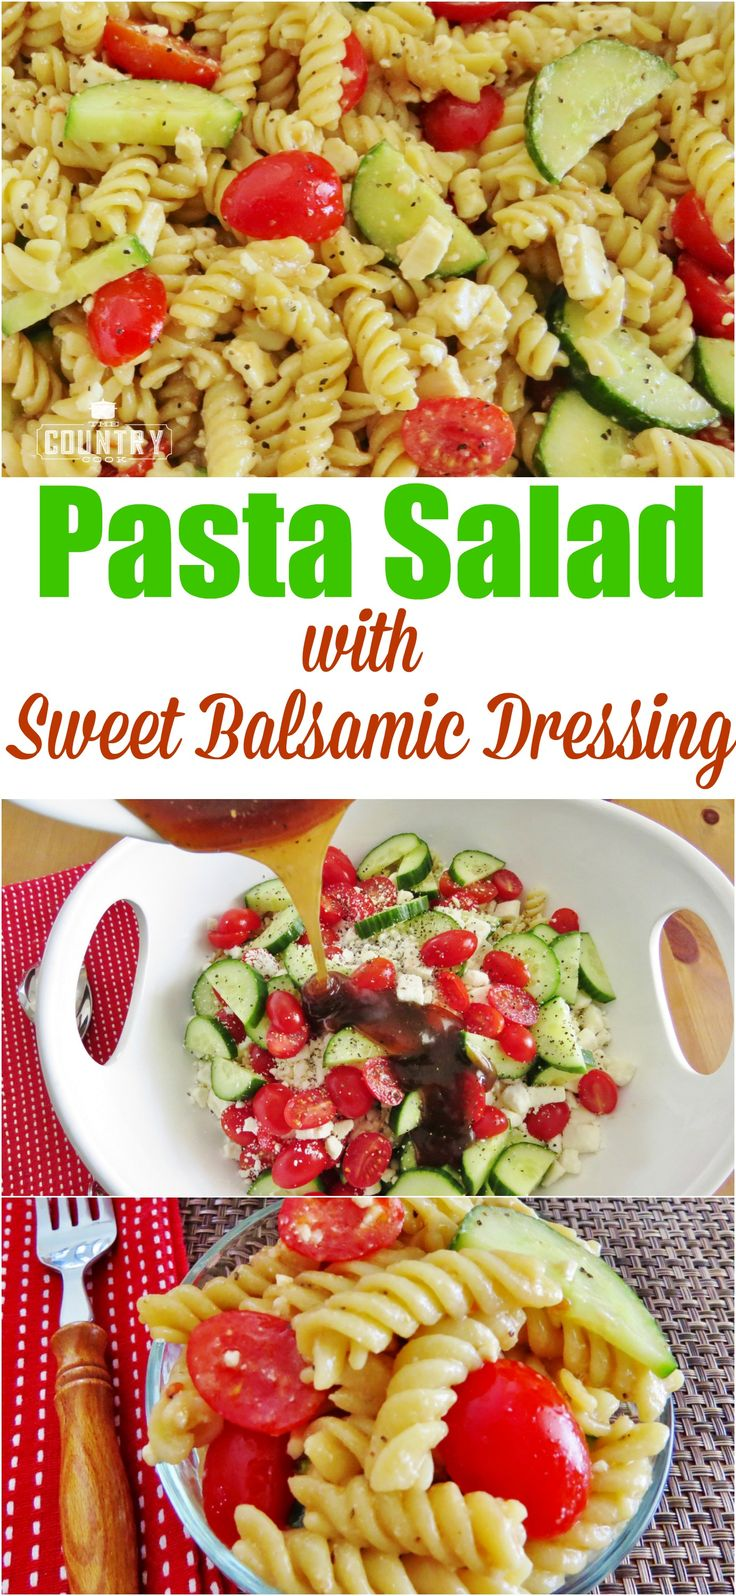 Pasta Salad With Sweet Balsamic Dressing Recipe At The Country Cook The Dressing Is Absolutely